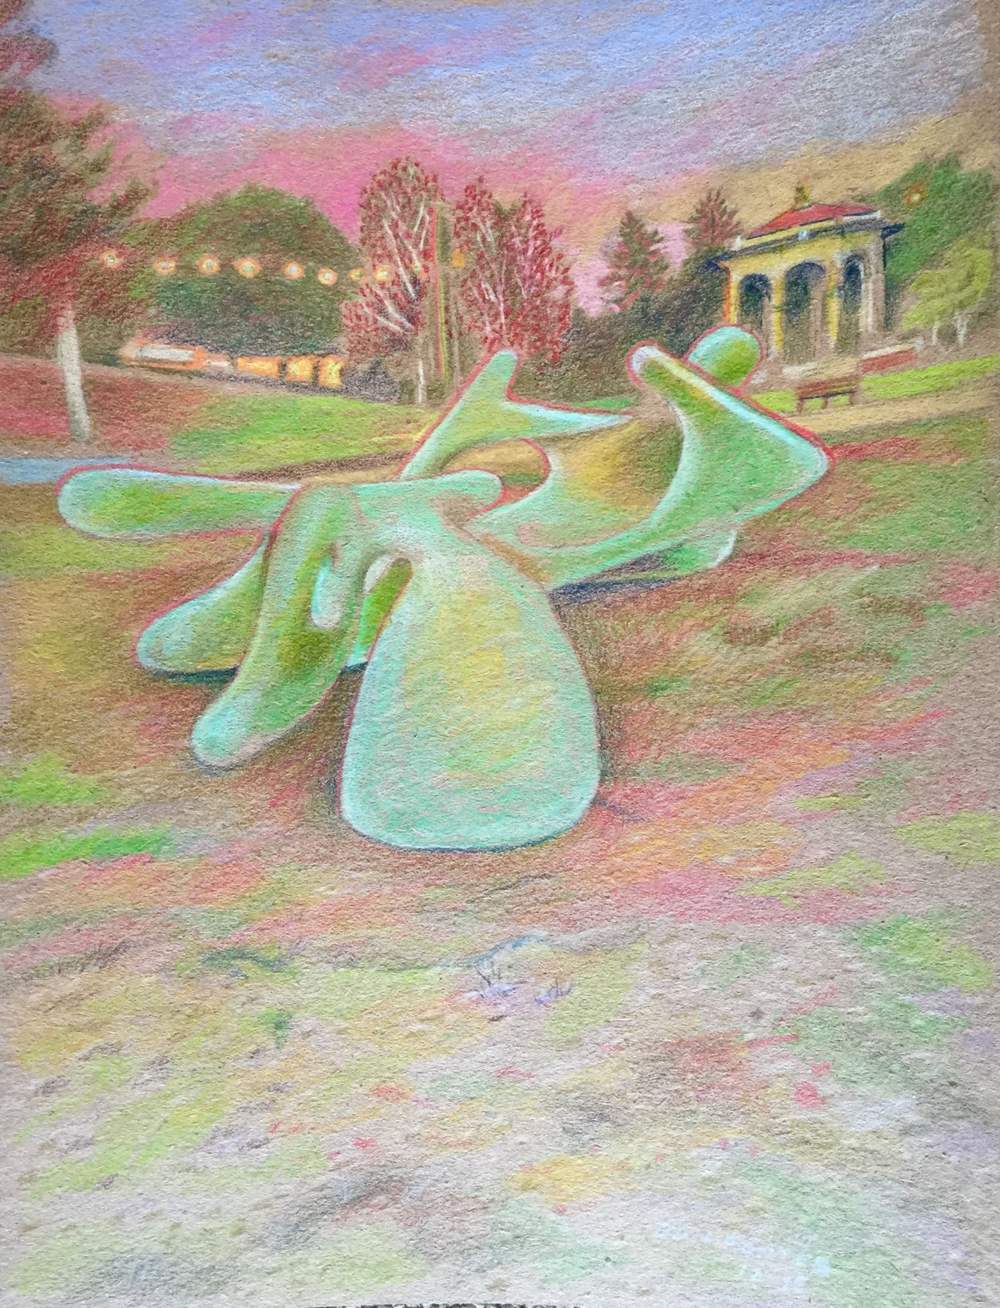 "Title: Mid Century Monster, Lake Merritt, Oakland    Media: Prismacolors    Dimensions: 8"" x 11""    Collection of: the artist"